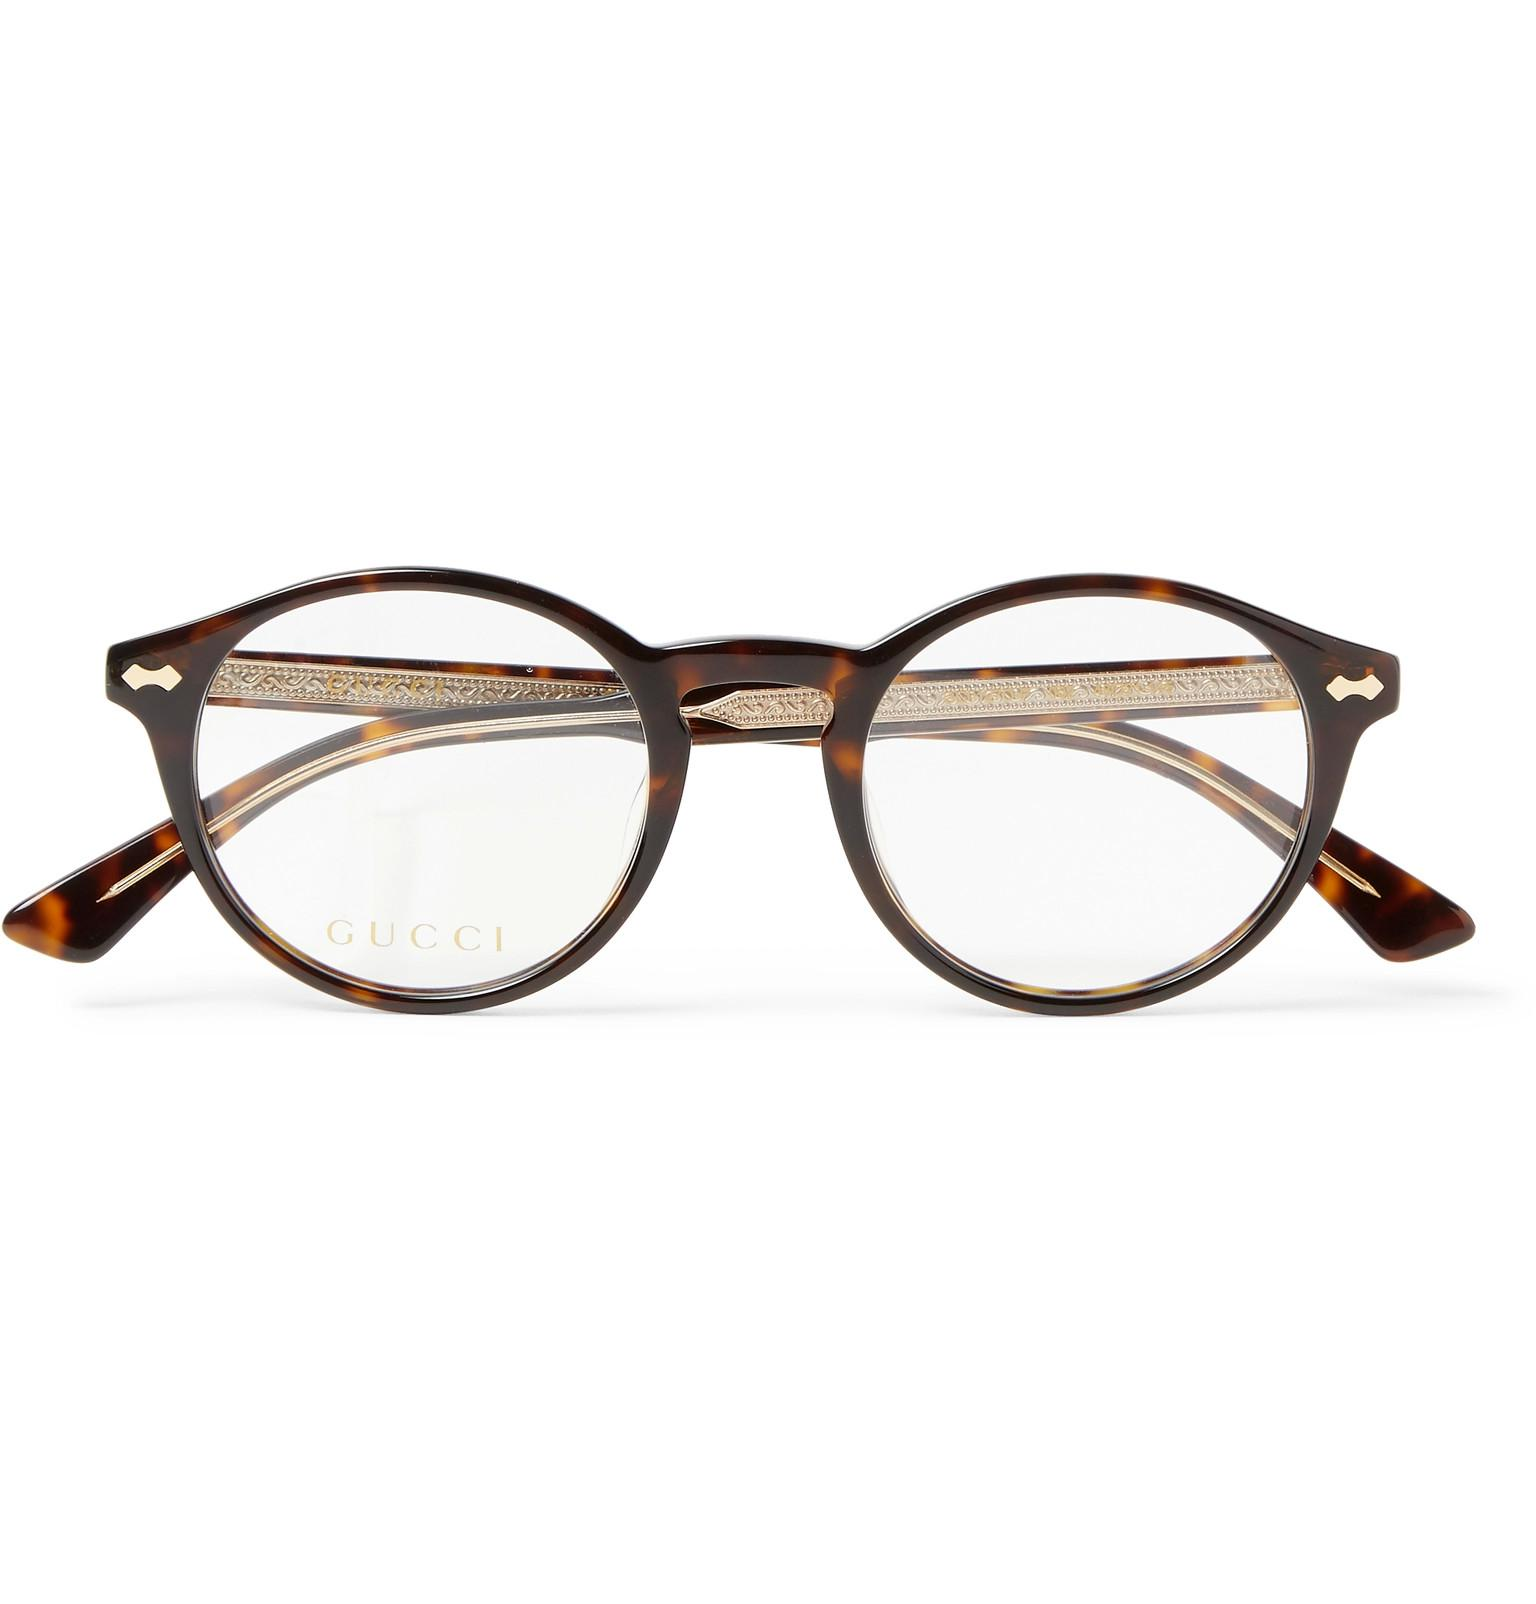 a8e6d40a972a7 Gucci Round-frame Tortoiseshell Acetate Optical Glasses in Brown for ...